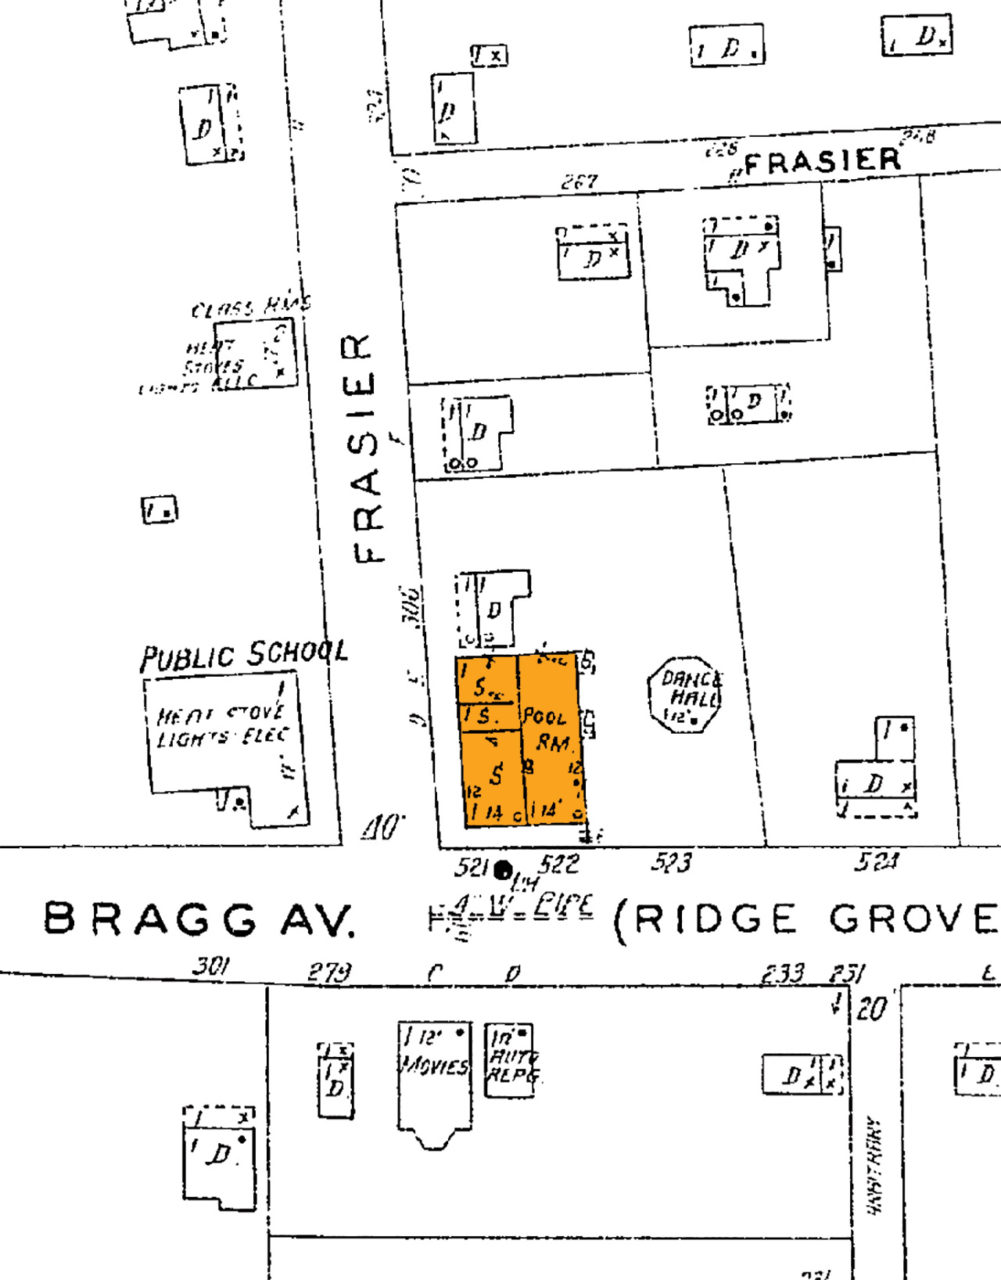 RICH HISTORY: Quite the active intersection, this 1928 sanborn map illustrates the cultural center of Auburn's African-American community prior to integration. The structure at 274 Bragg houses a 'pool room' and three separate stores ('S') while an all-black public school, dance hall, and movie theater are adjacent to the building. Sadly, 274 Bragg is the only structure that remains.